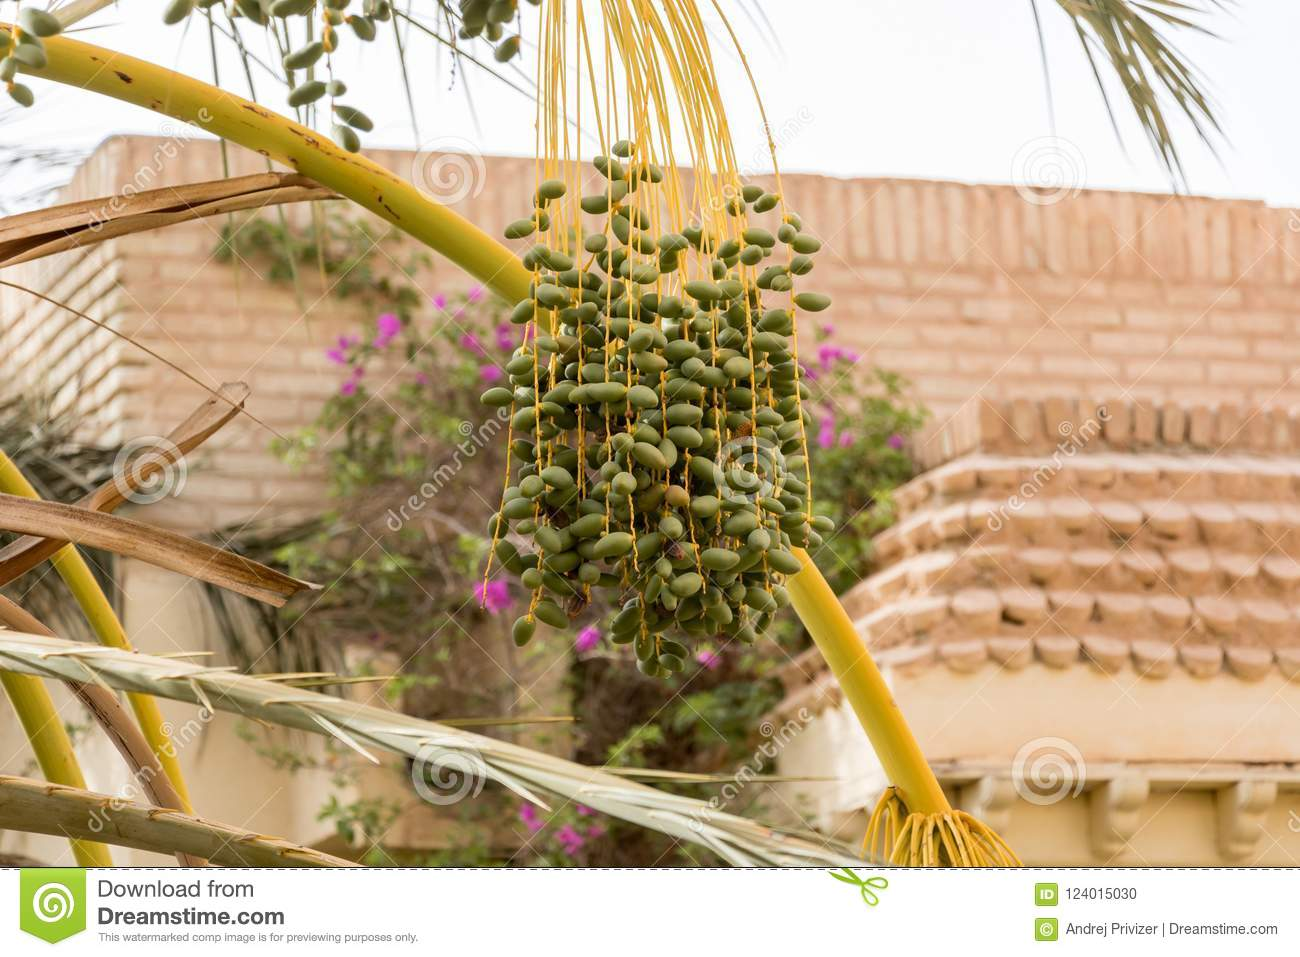 Detail of dates on palm tree, Tunisia, Africa